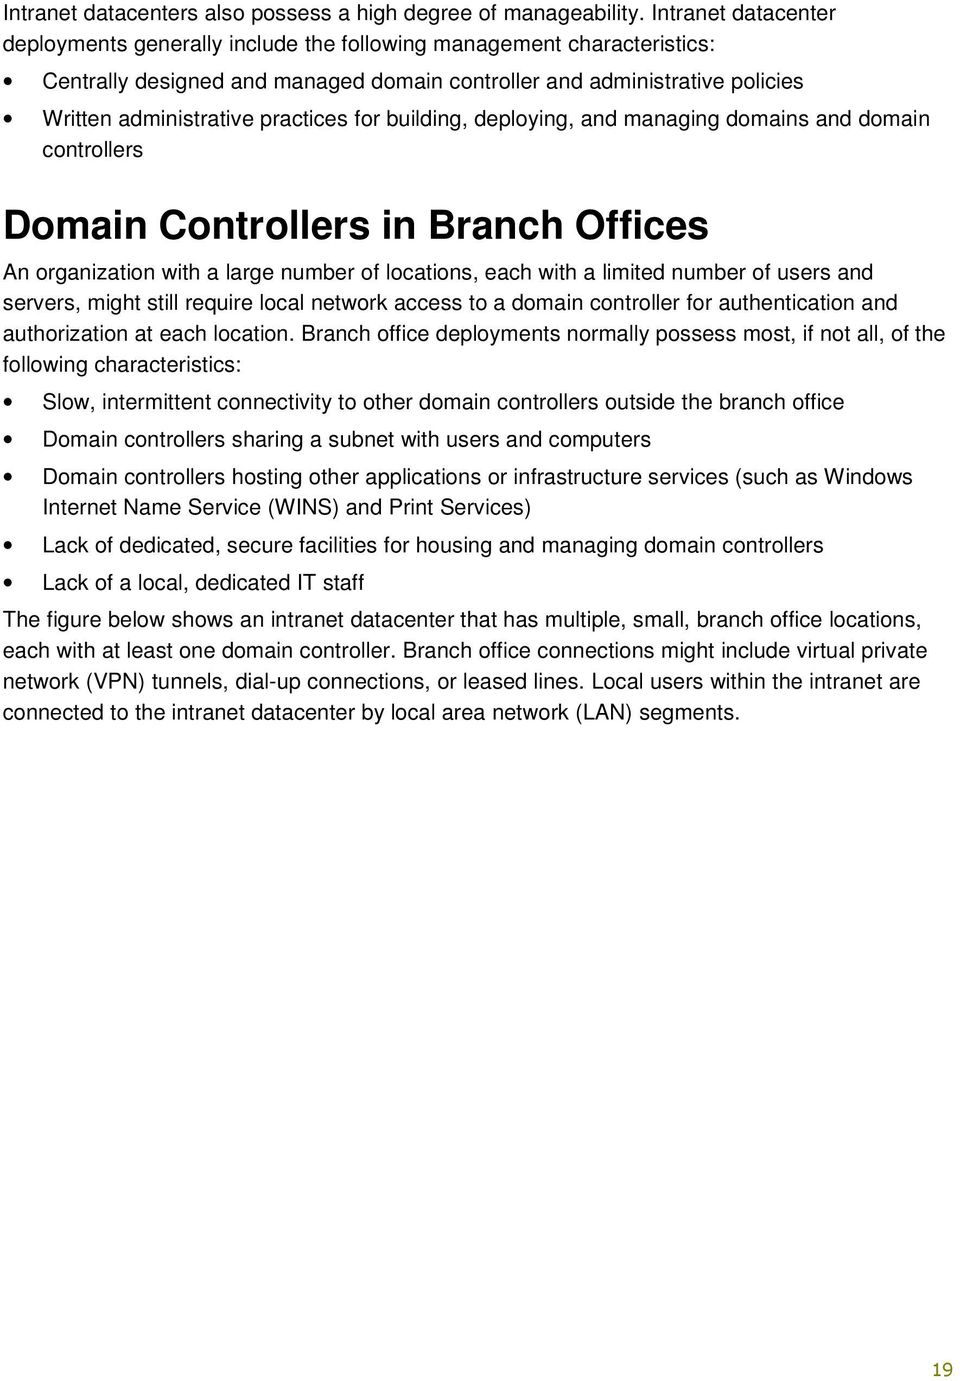 practices for building, deploying, and managing domains and domain controllers Domain Controllers in Branch Offices An organization with a large number of locations, each with a limited number of